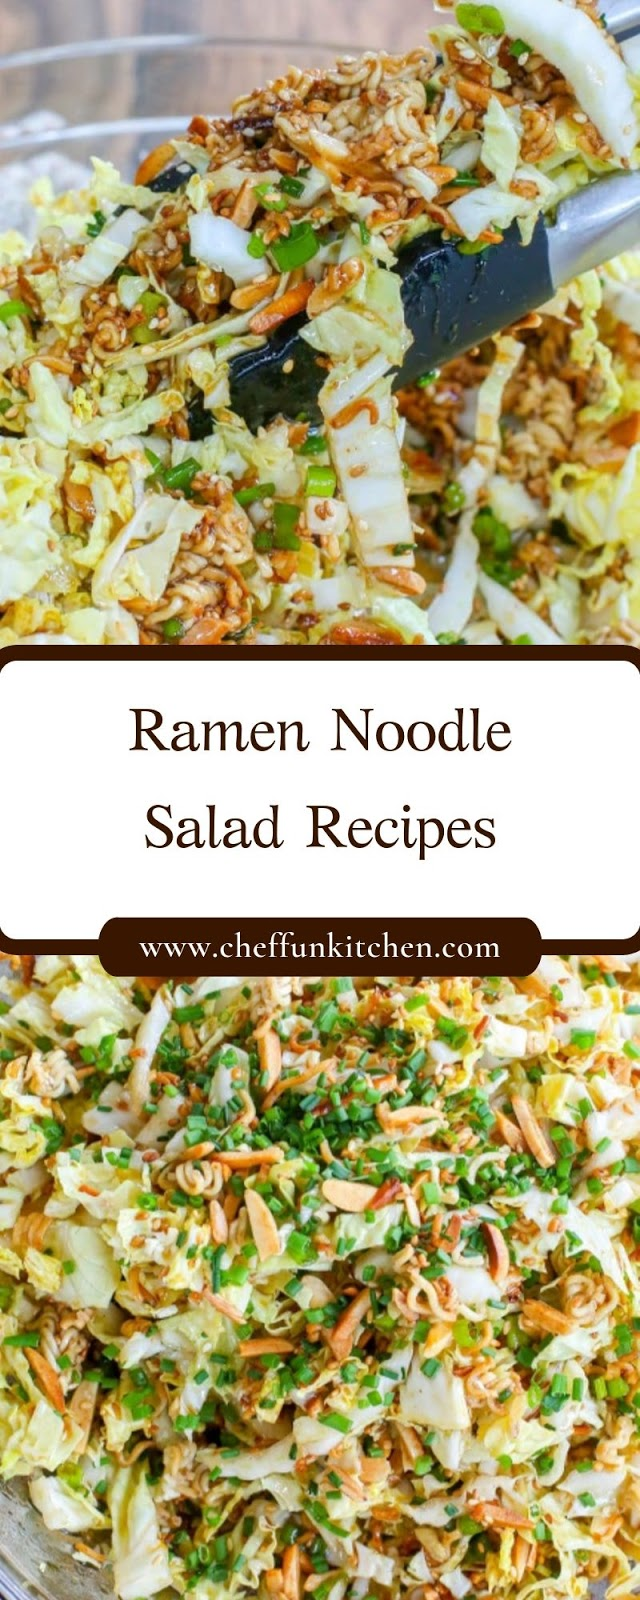 Ramen Noodle Salad Recipes